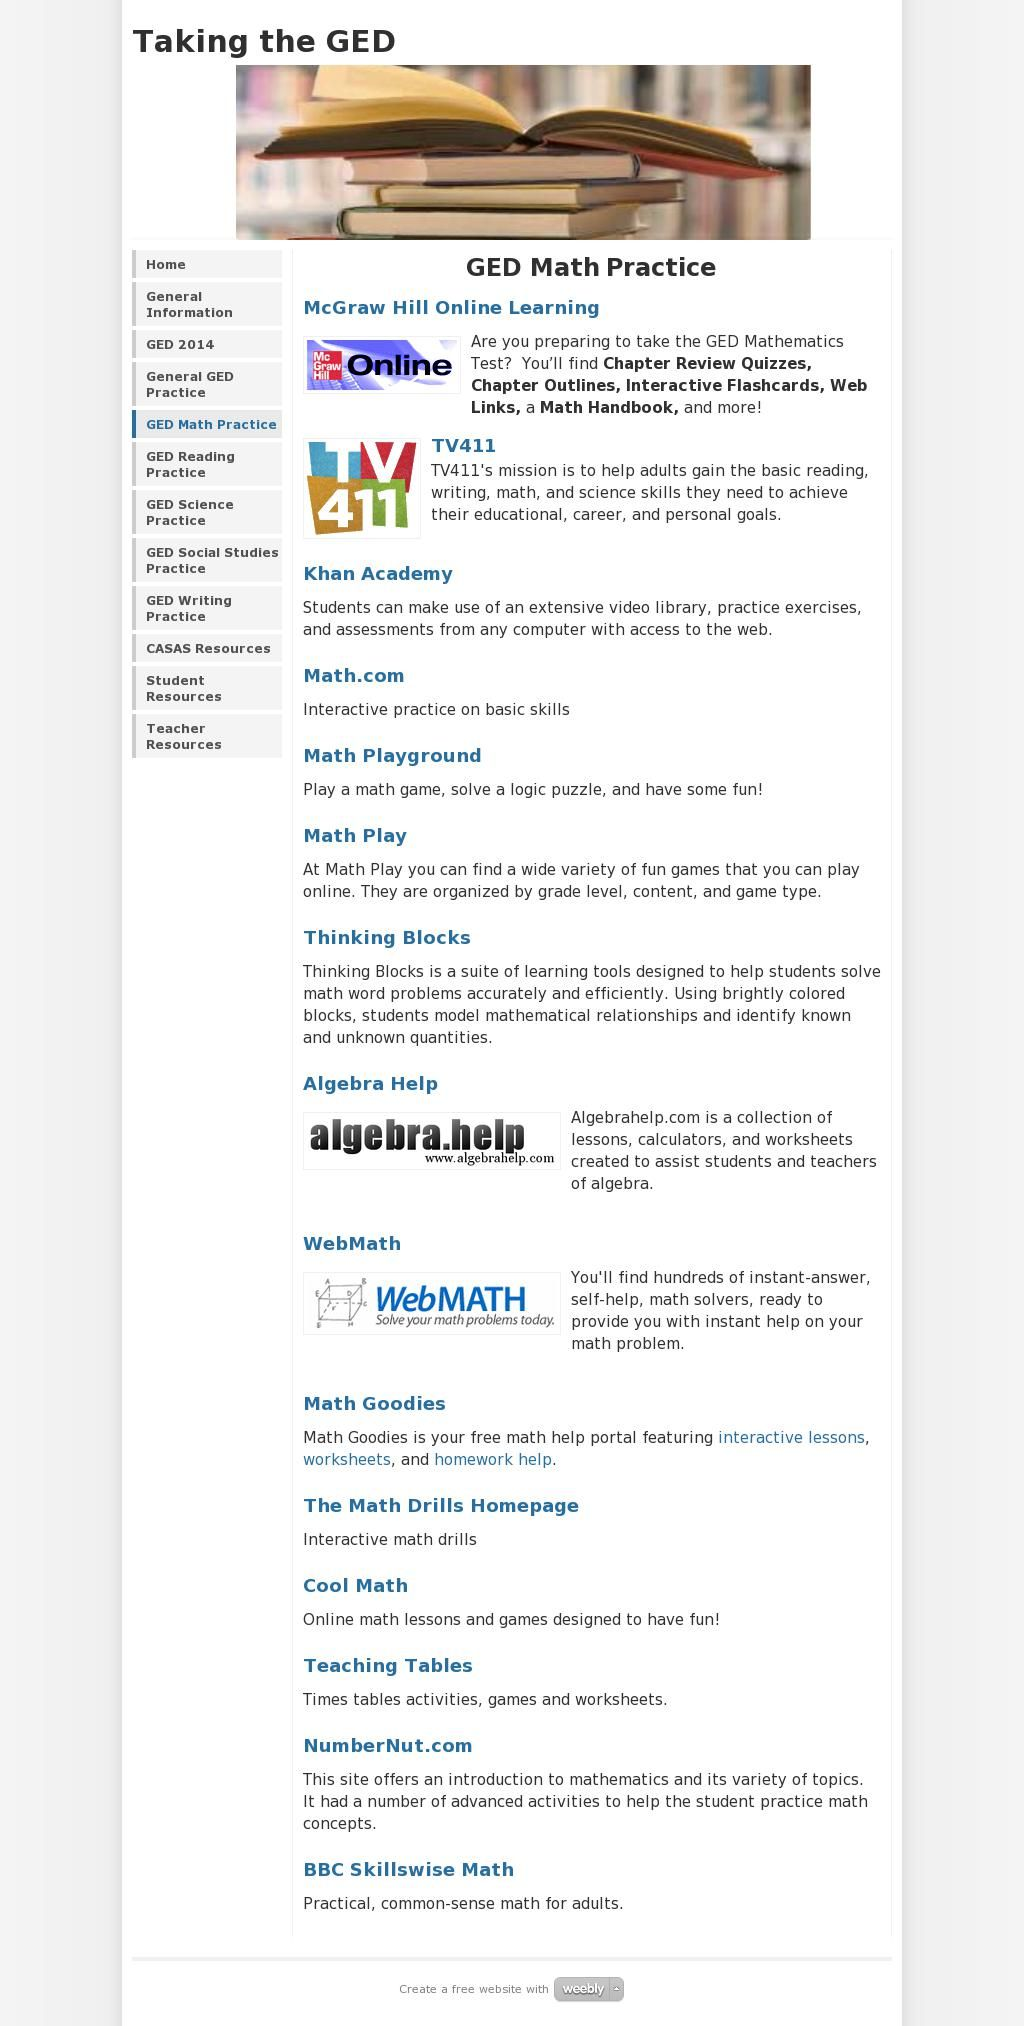 The website \'http://gedinfo.weebly.com/ged-math-practice.html ...